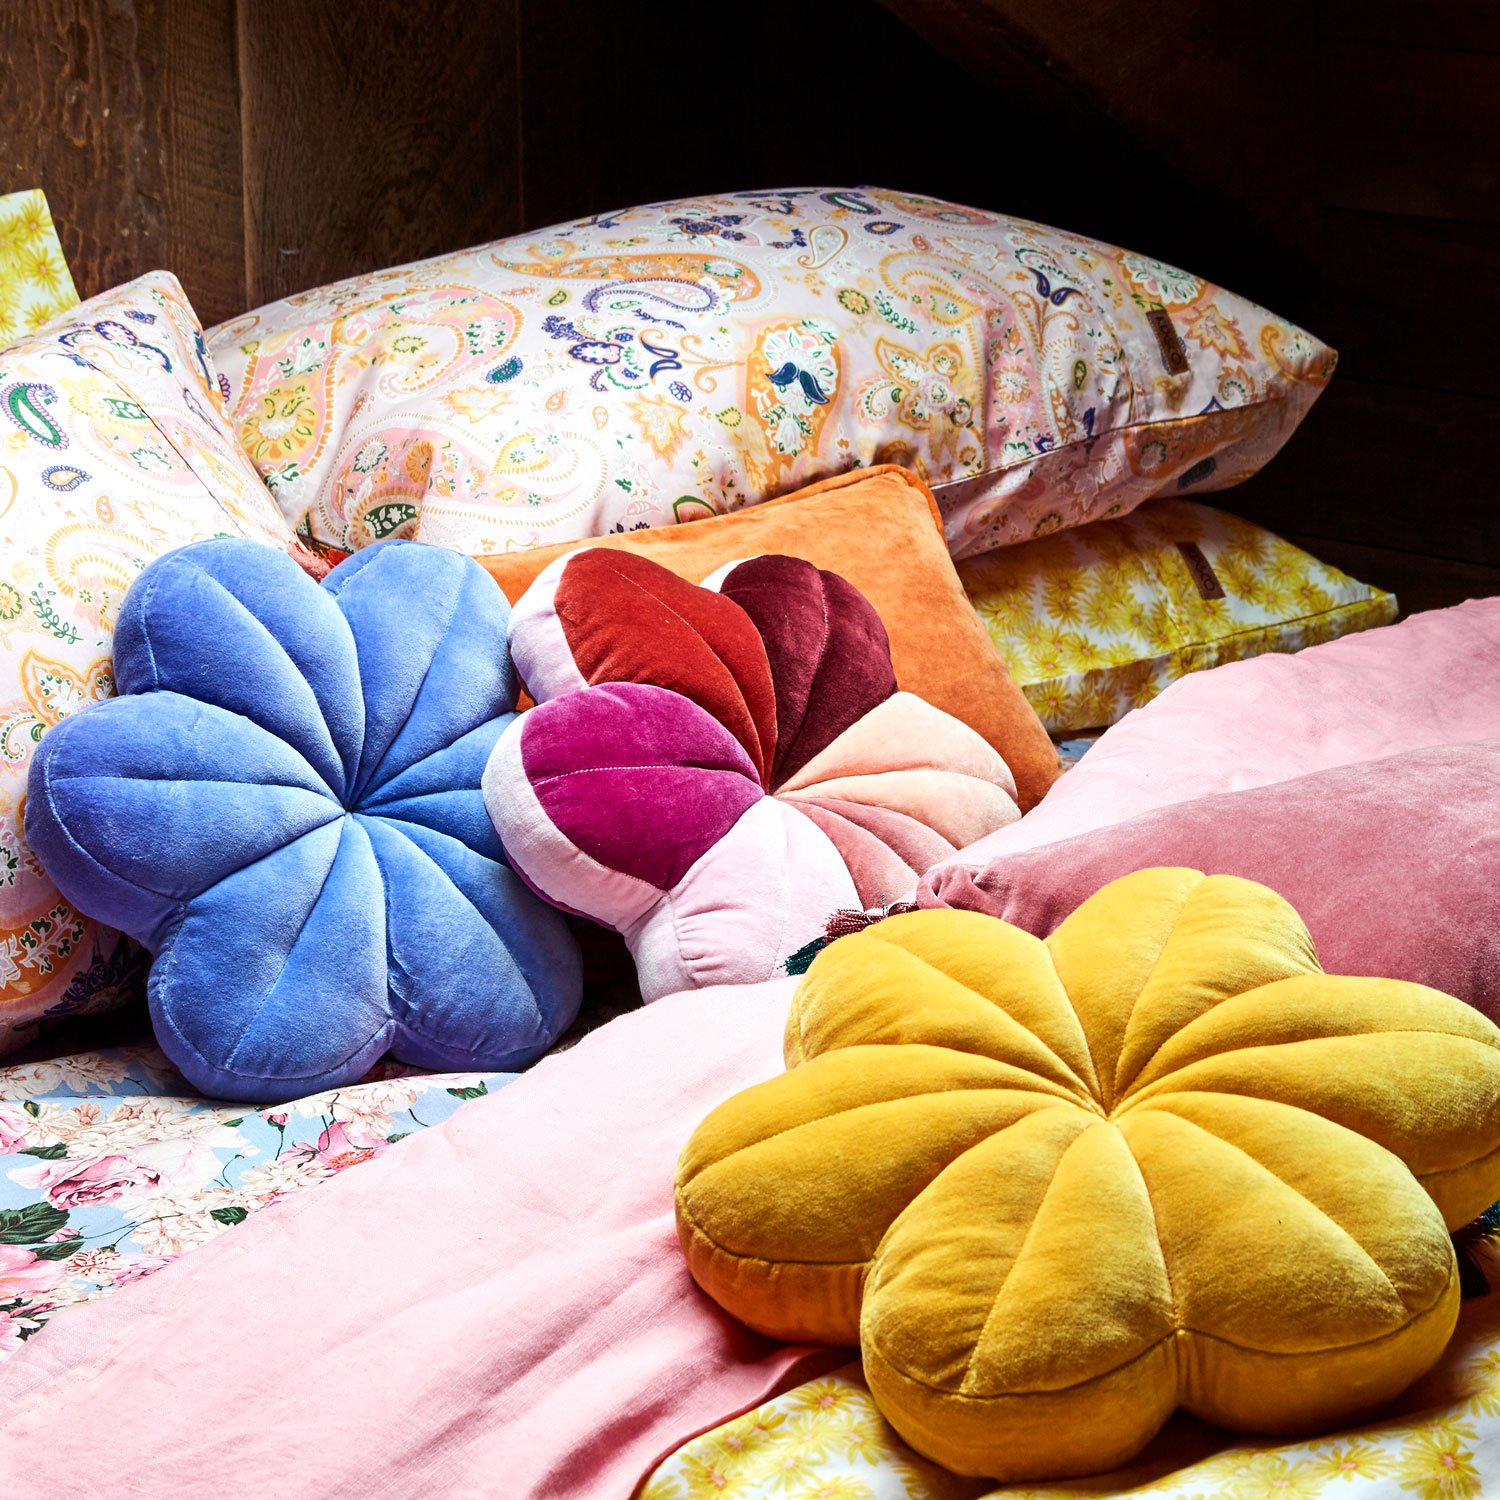 Velvet floral pillows in bright colors